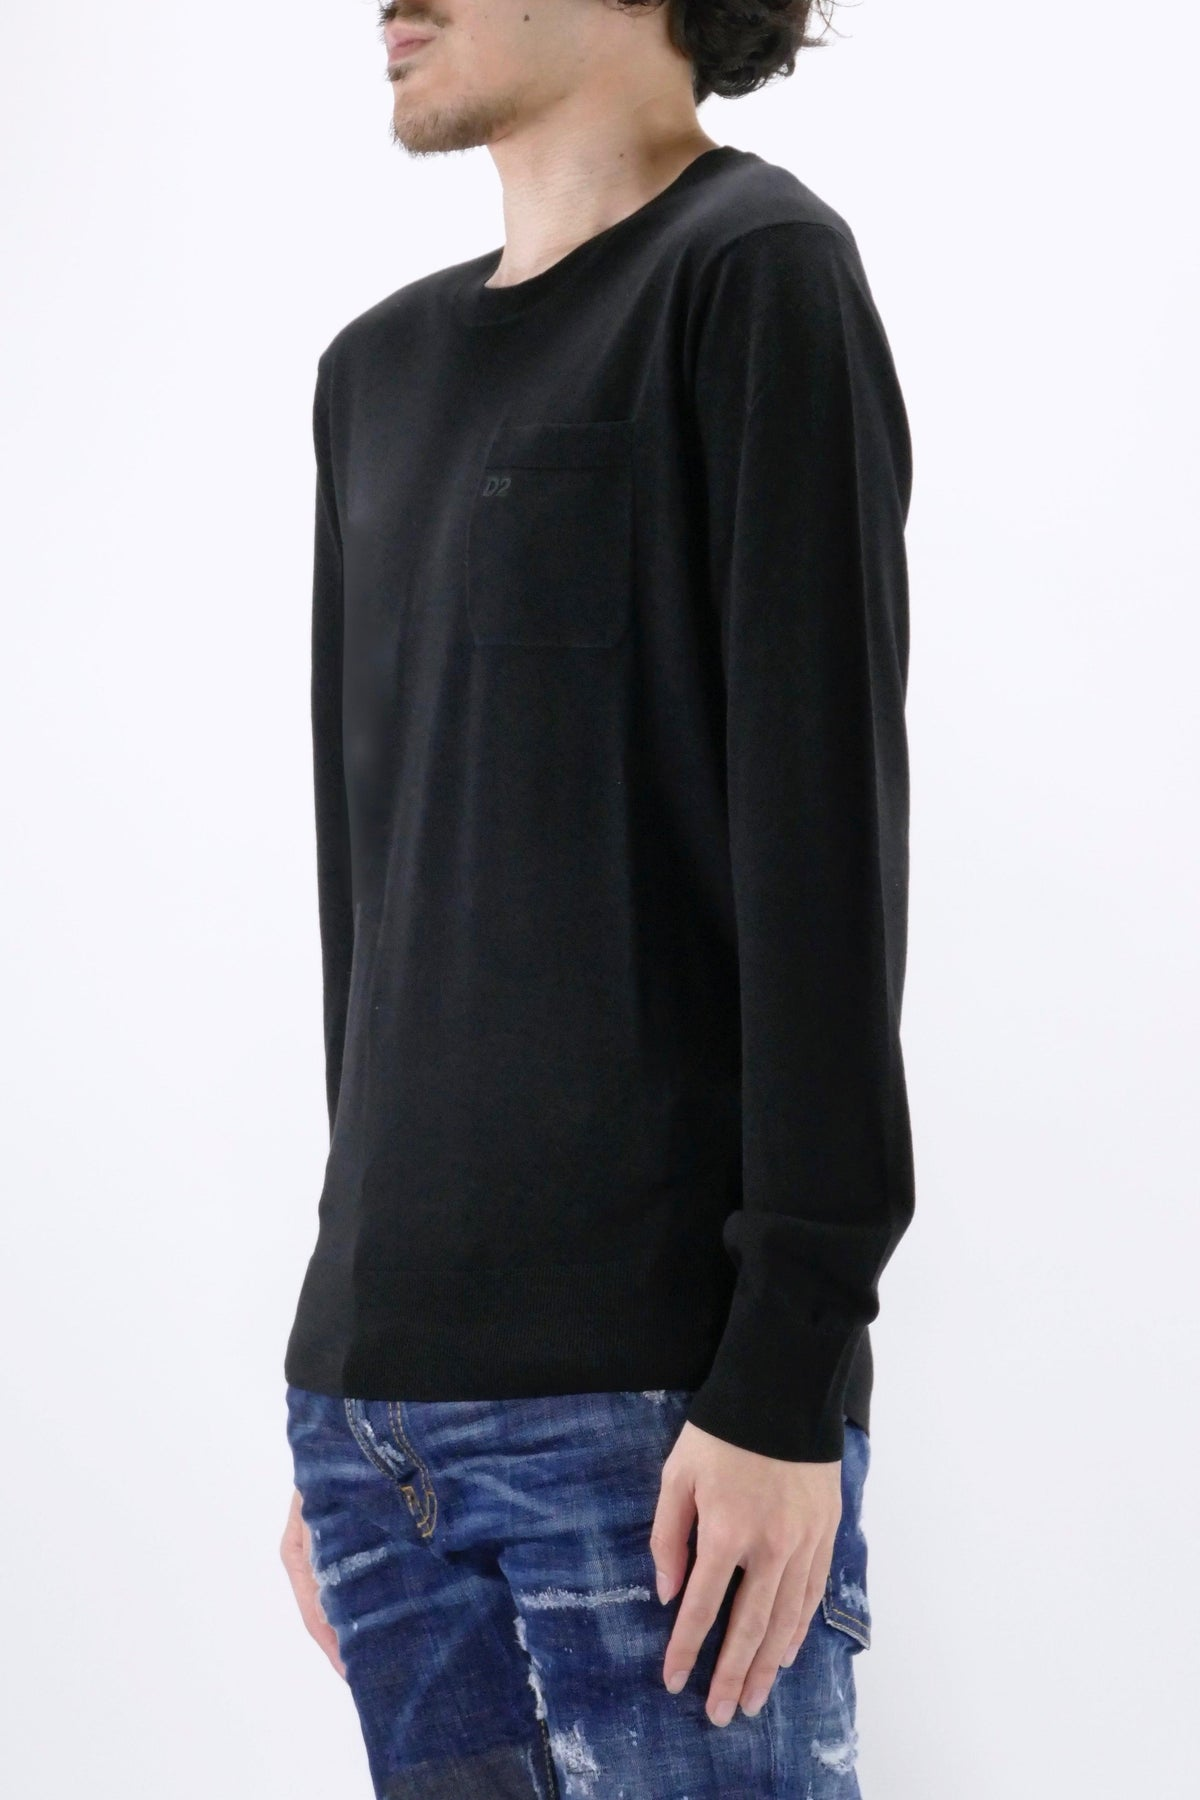 DSquared2 Pocket Sweater Black